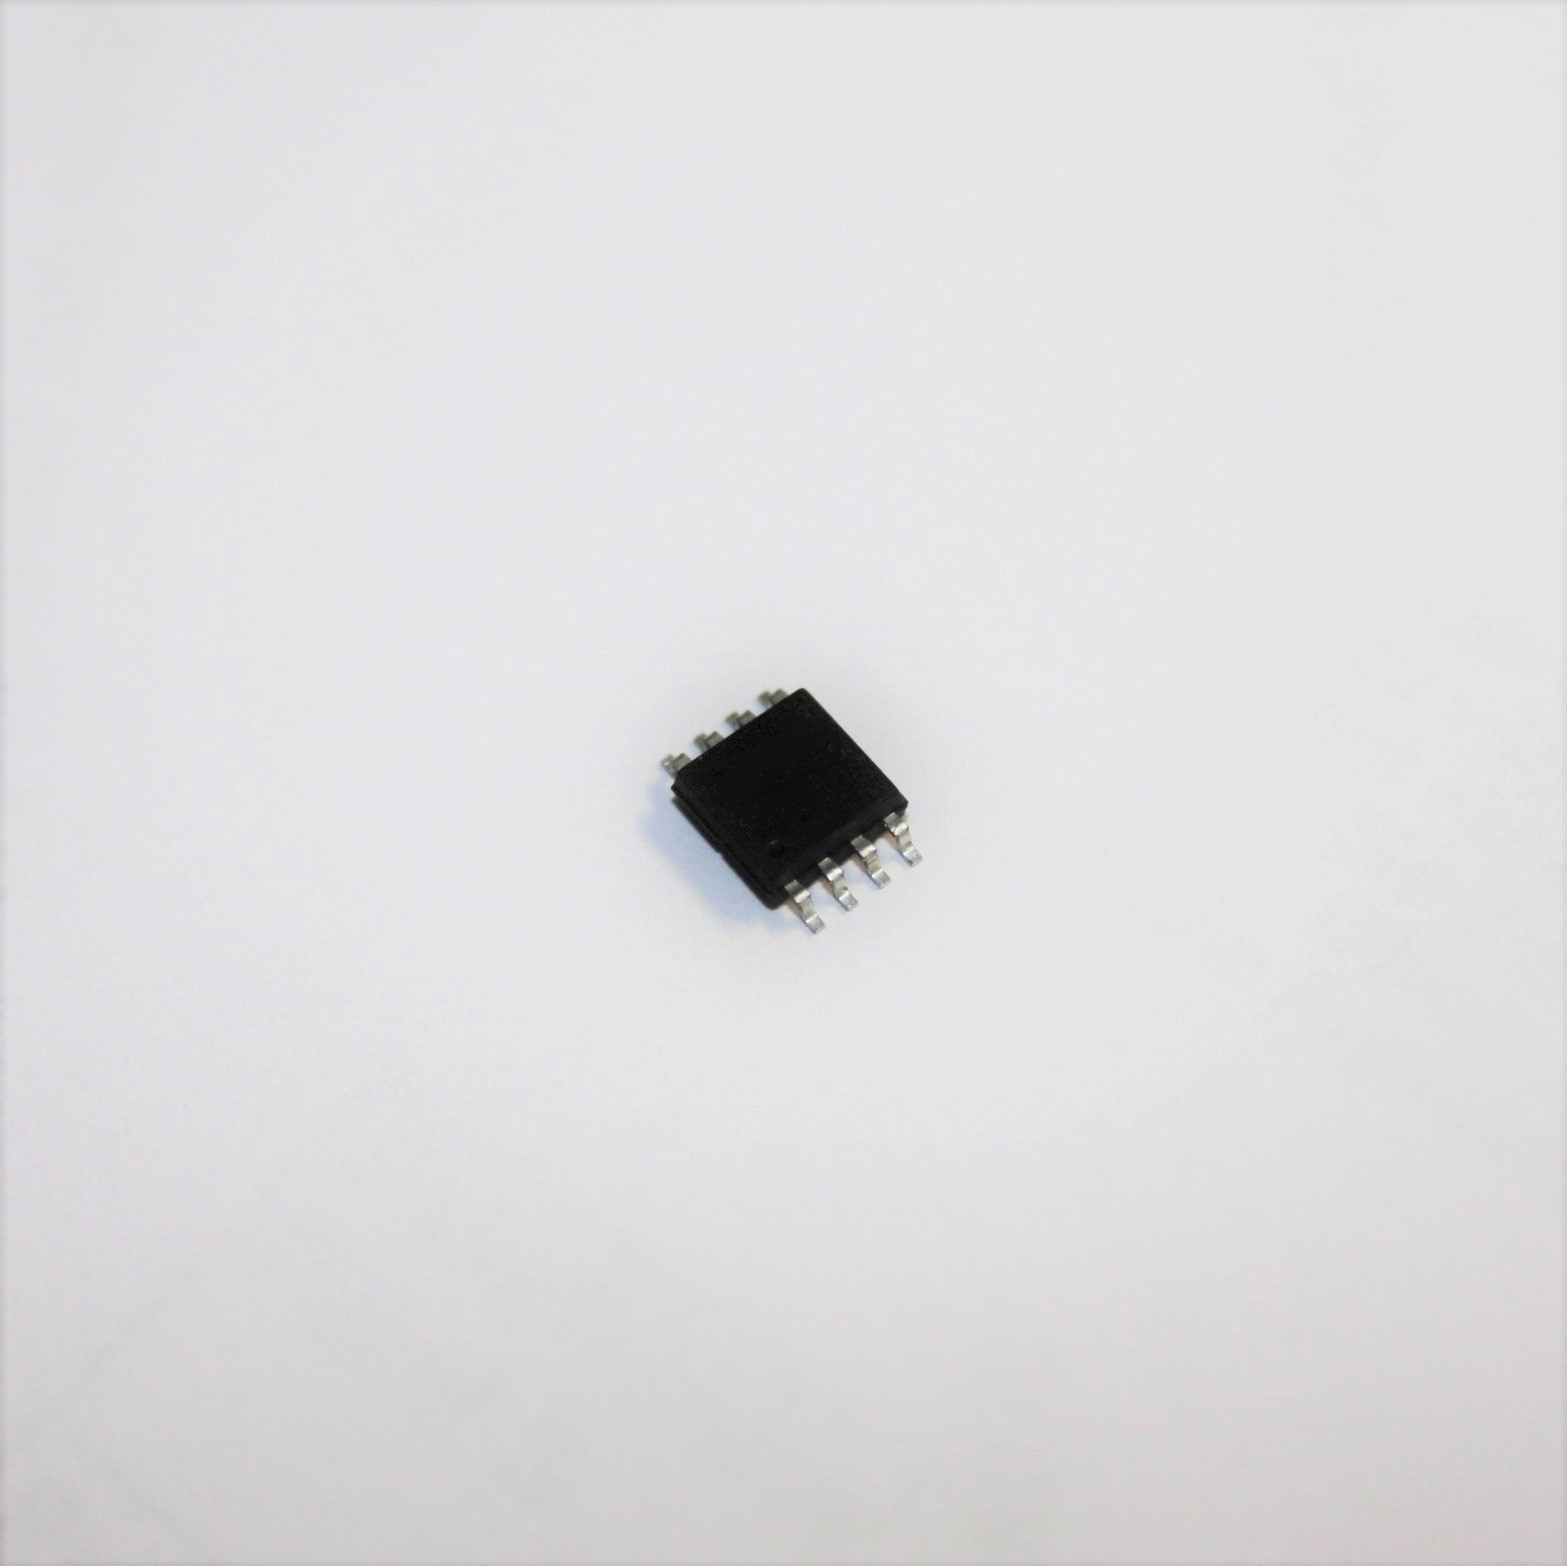 SST 25VF040B 50-4C-S2AF, 4Mbit SPI Serial Flash, SOIC-8